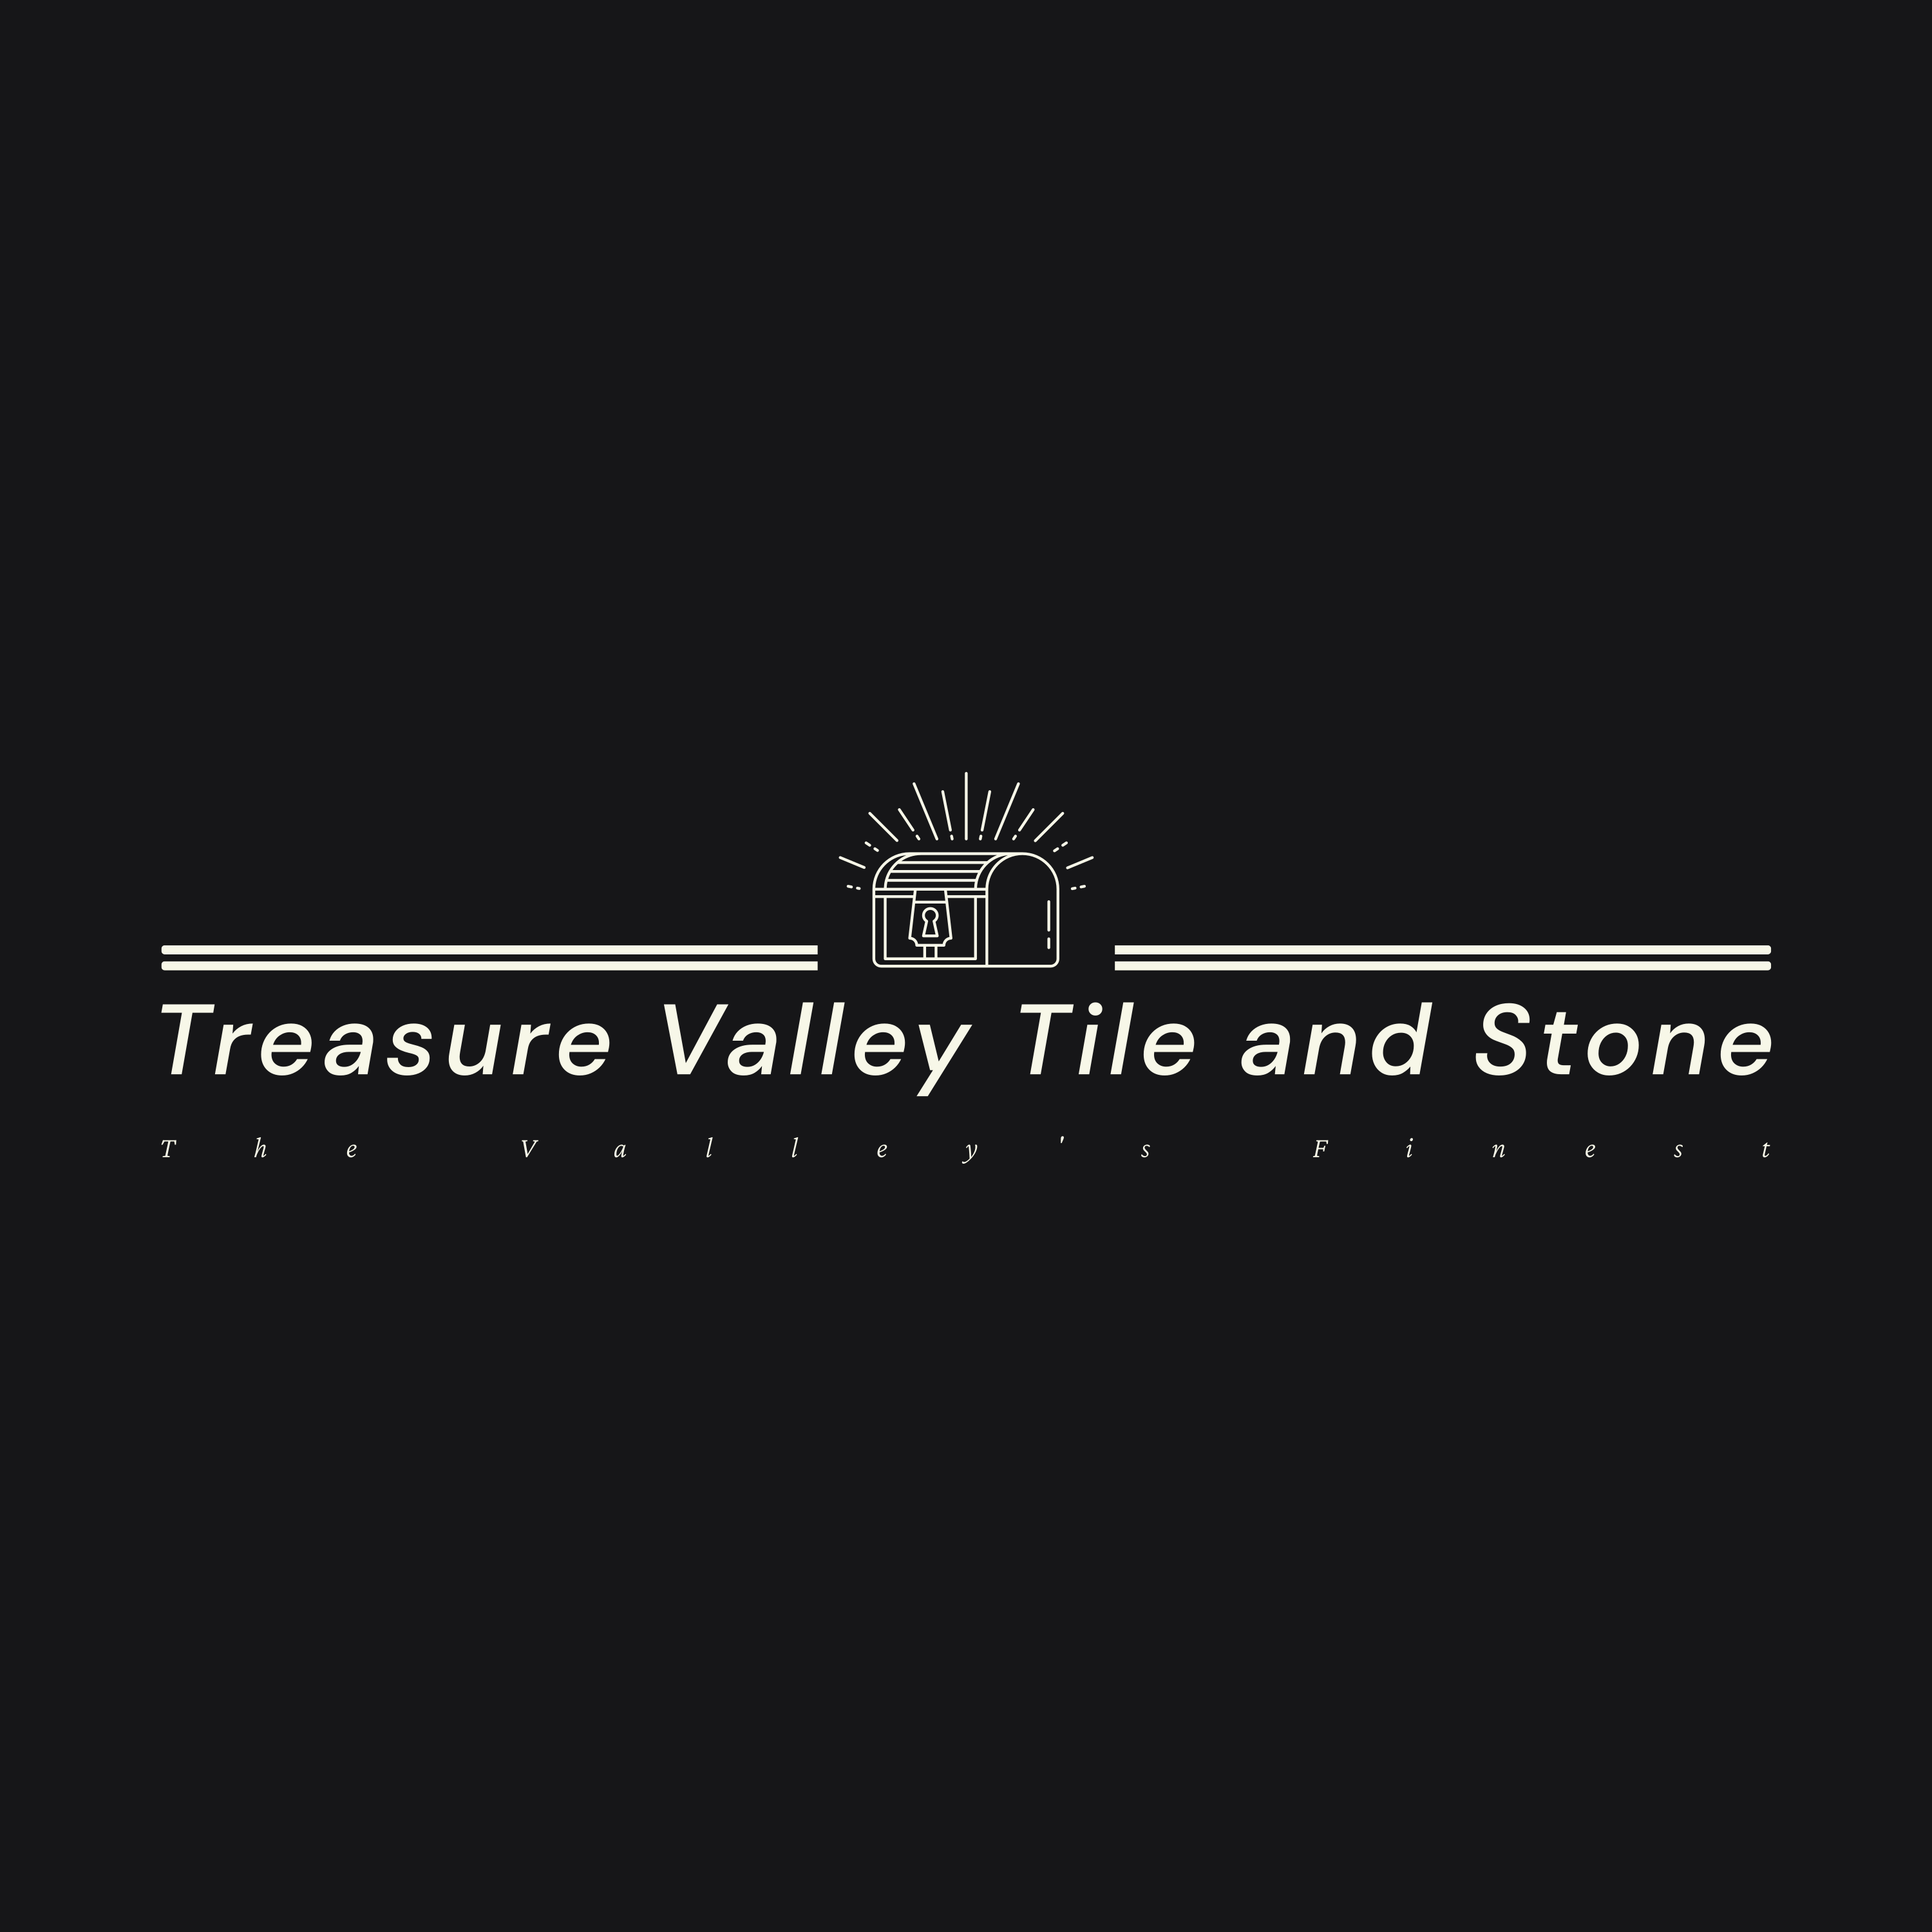 Treasure Valley Tile and Stone